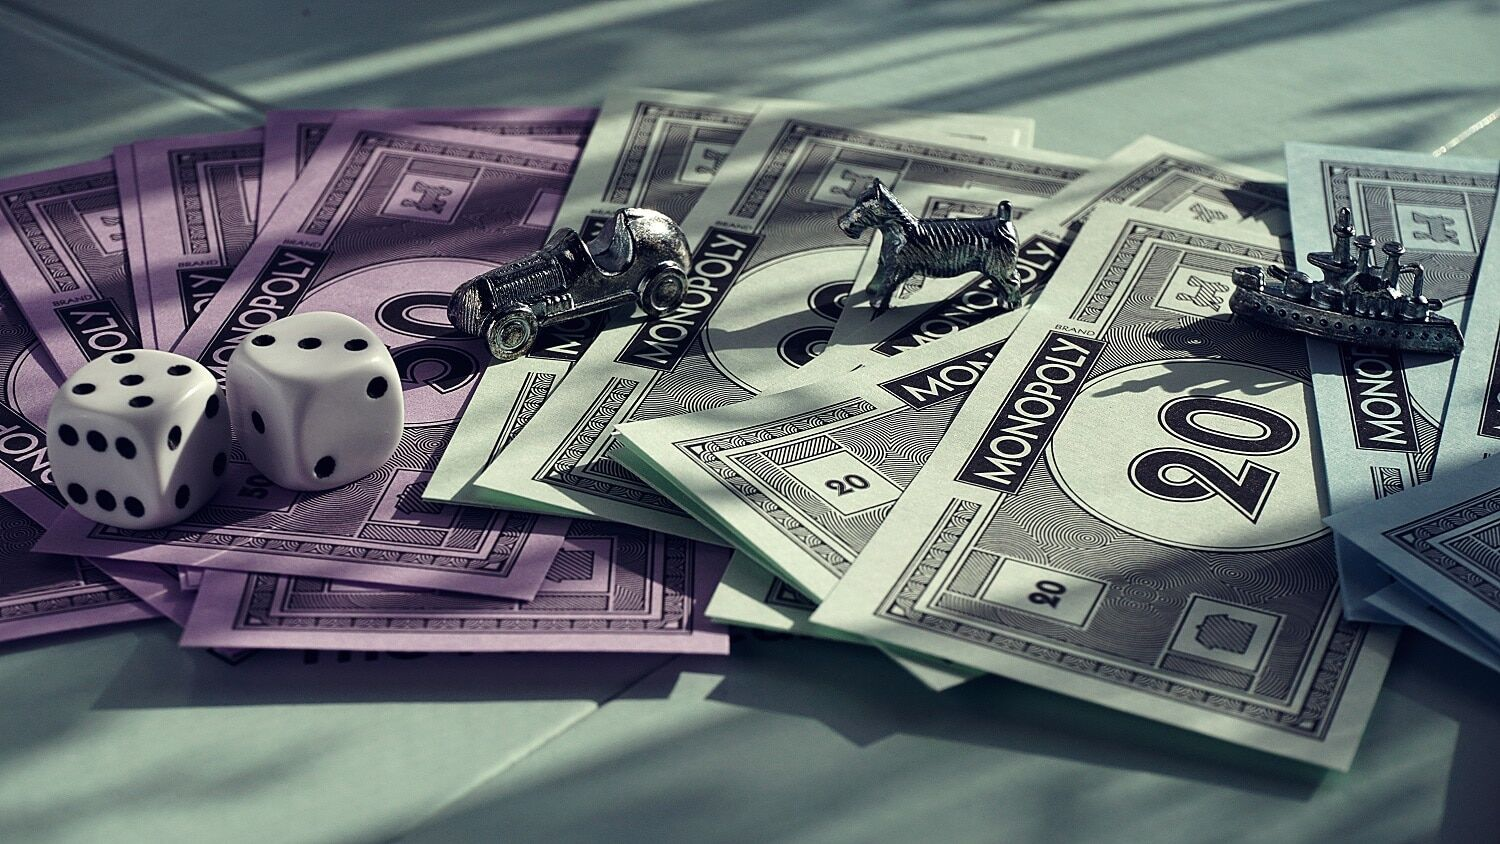 Facts about money with monopoly money.